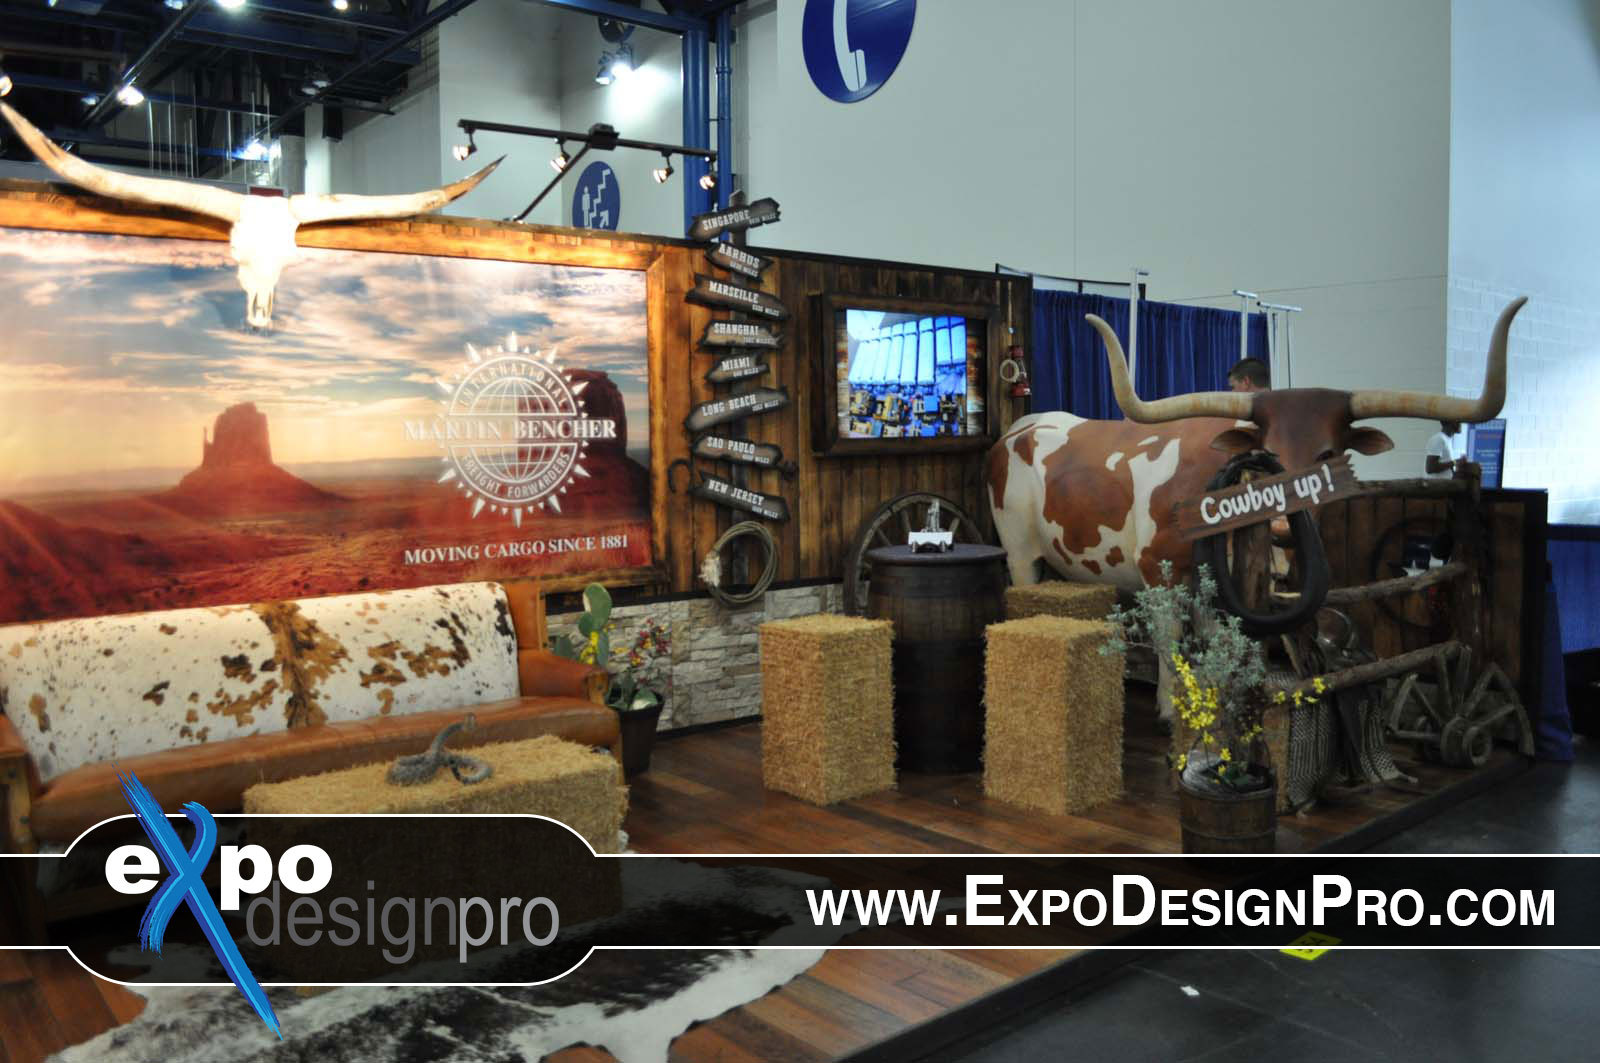 Need A Trade Show Booth Design Company To Design Your Next Trade